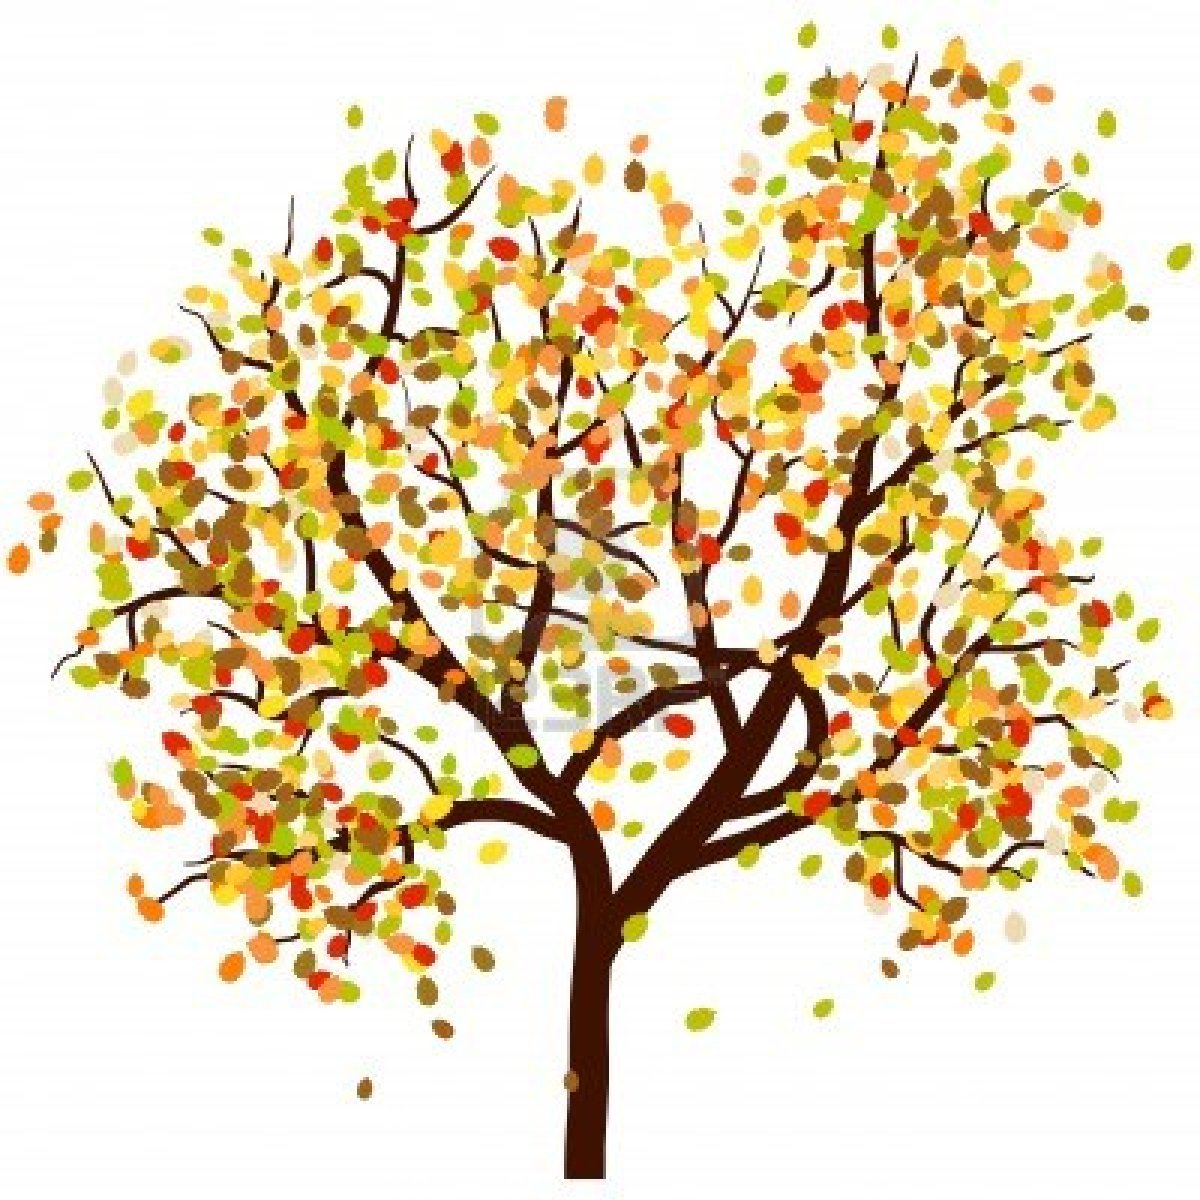 339 Falling Leaves free clipart.